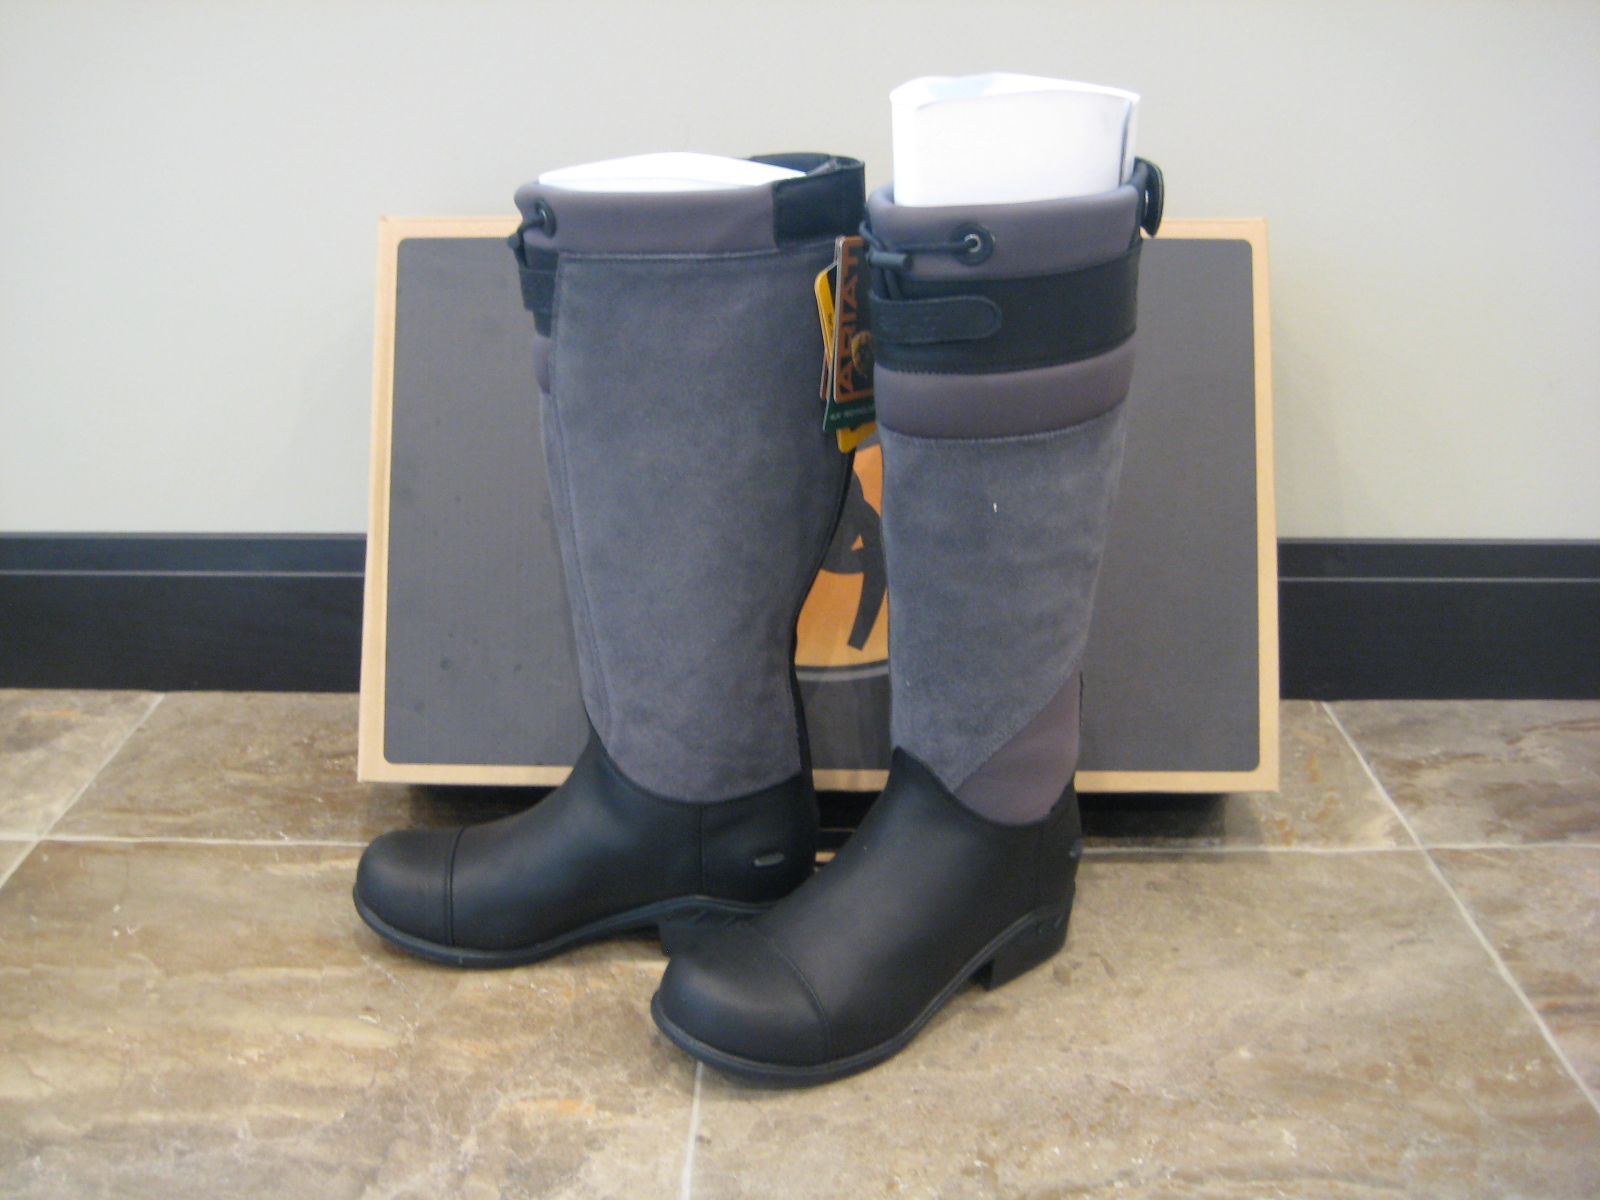 BNIB Ariat Brossard Tall Winter Boots Size 8 | My Horse Forum